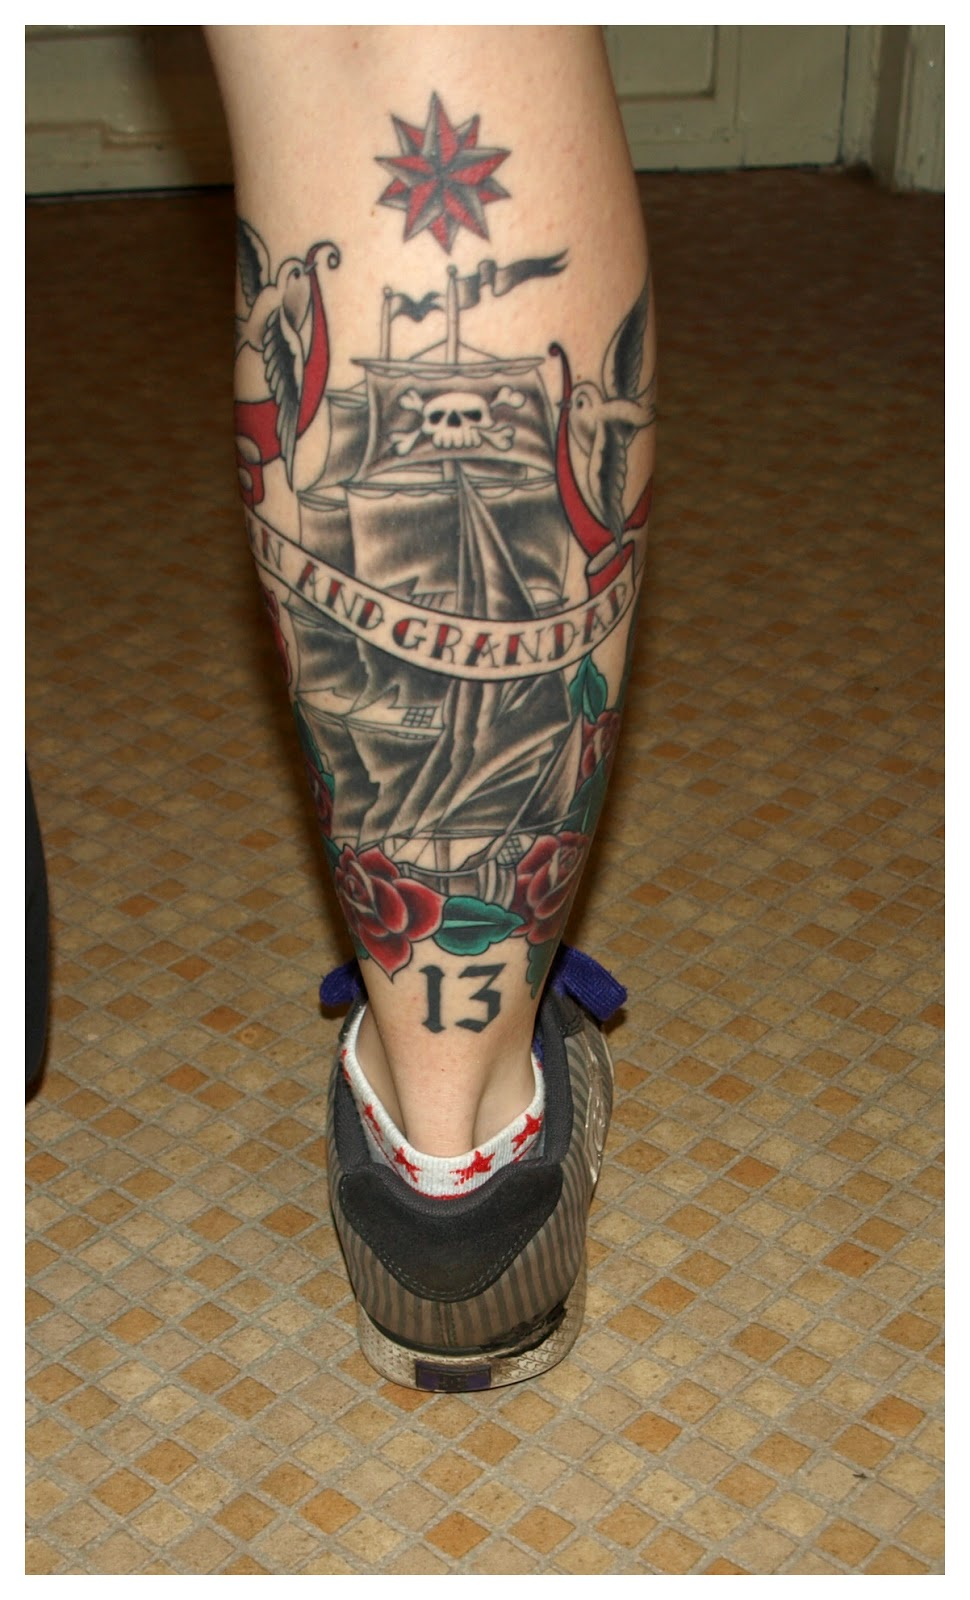 tattoo, ink, ship, old school, roses, swallow, traditional, sailor jerry, pirate, swallow, star, nautical, 13, thirteen, leg, calf, traditional,